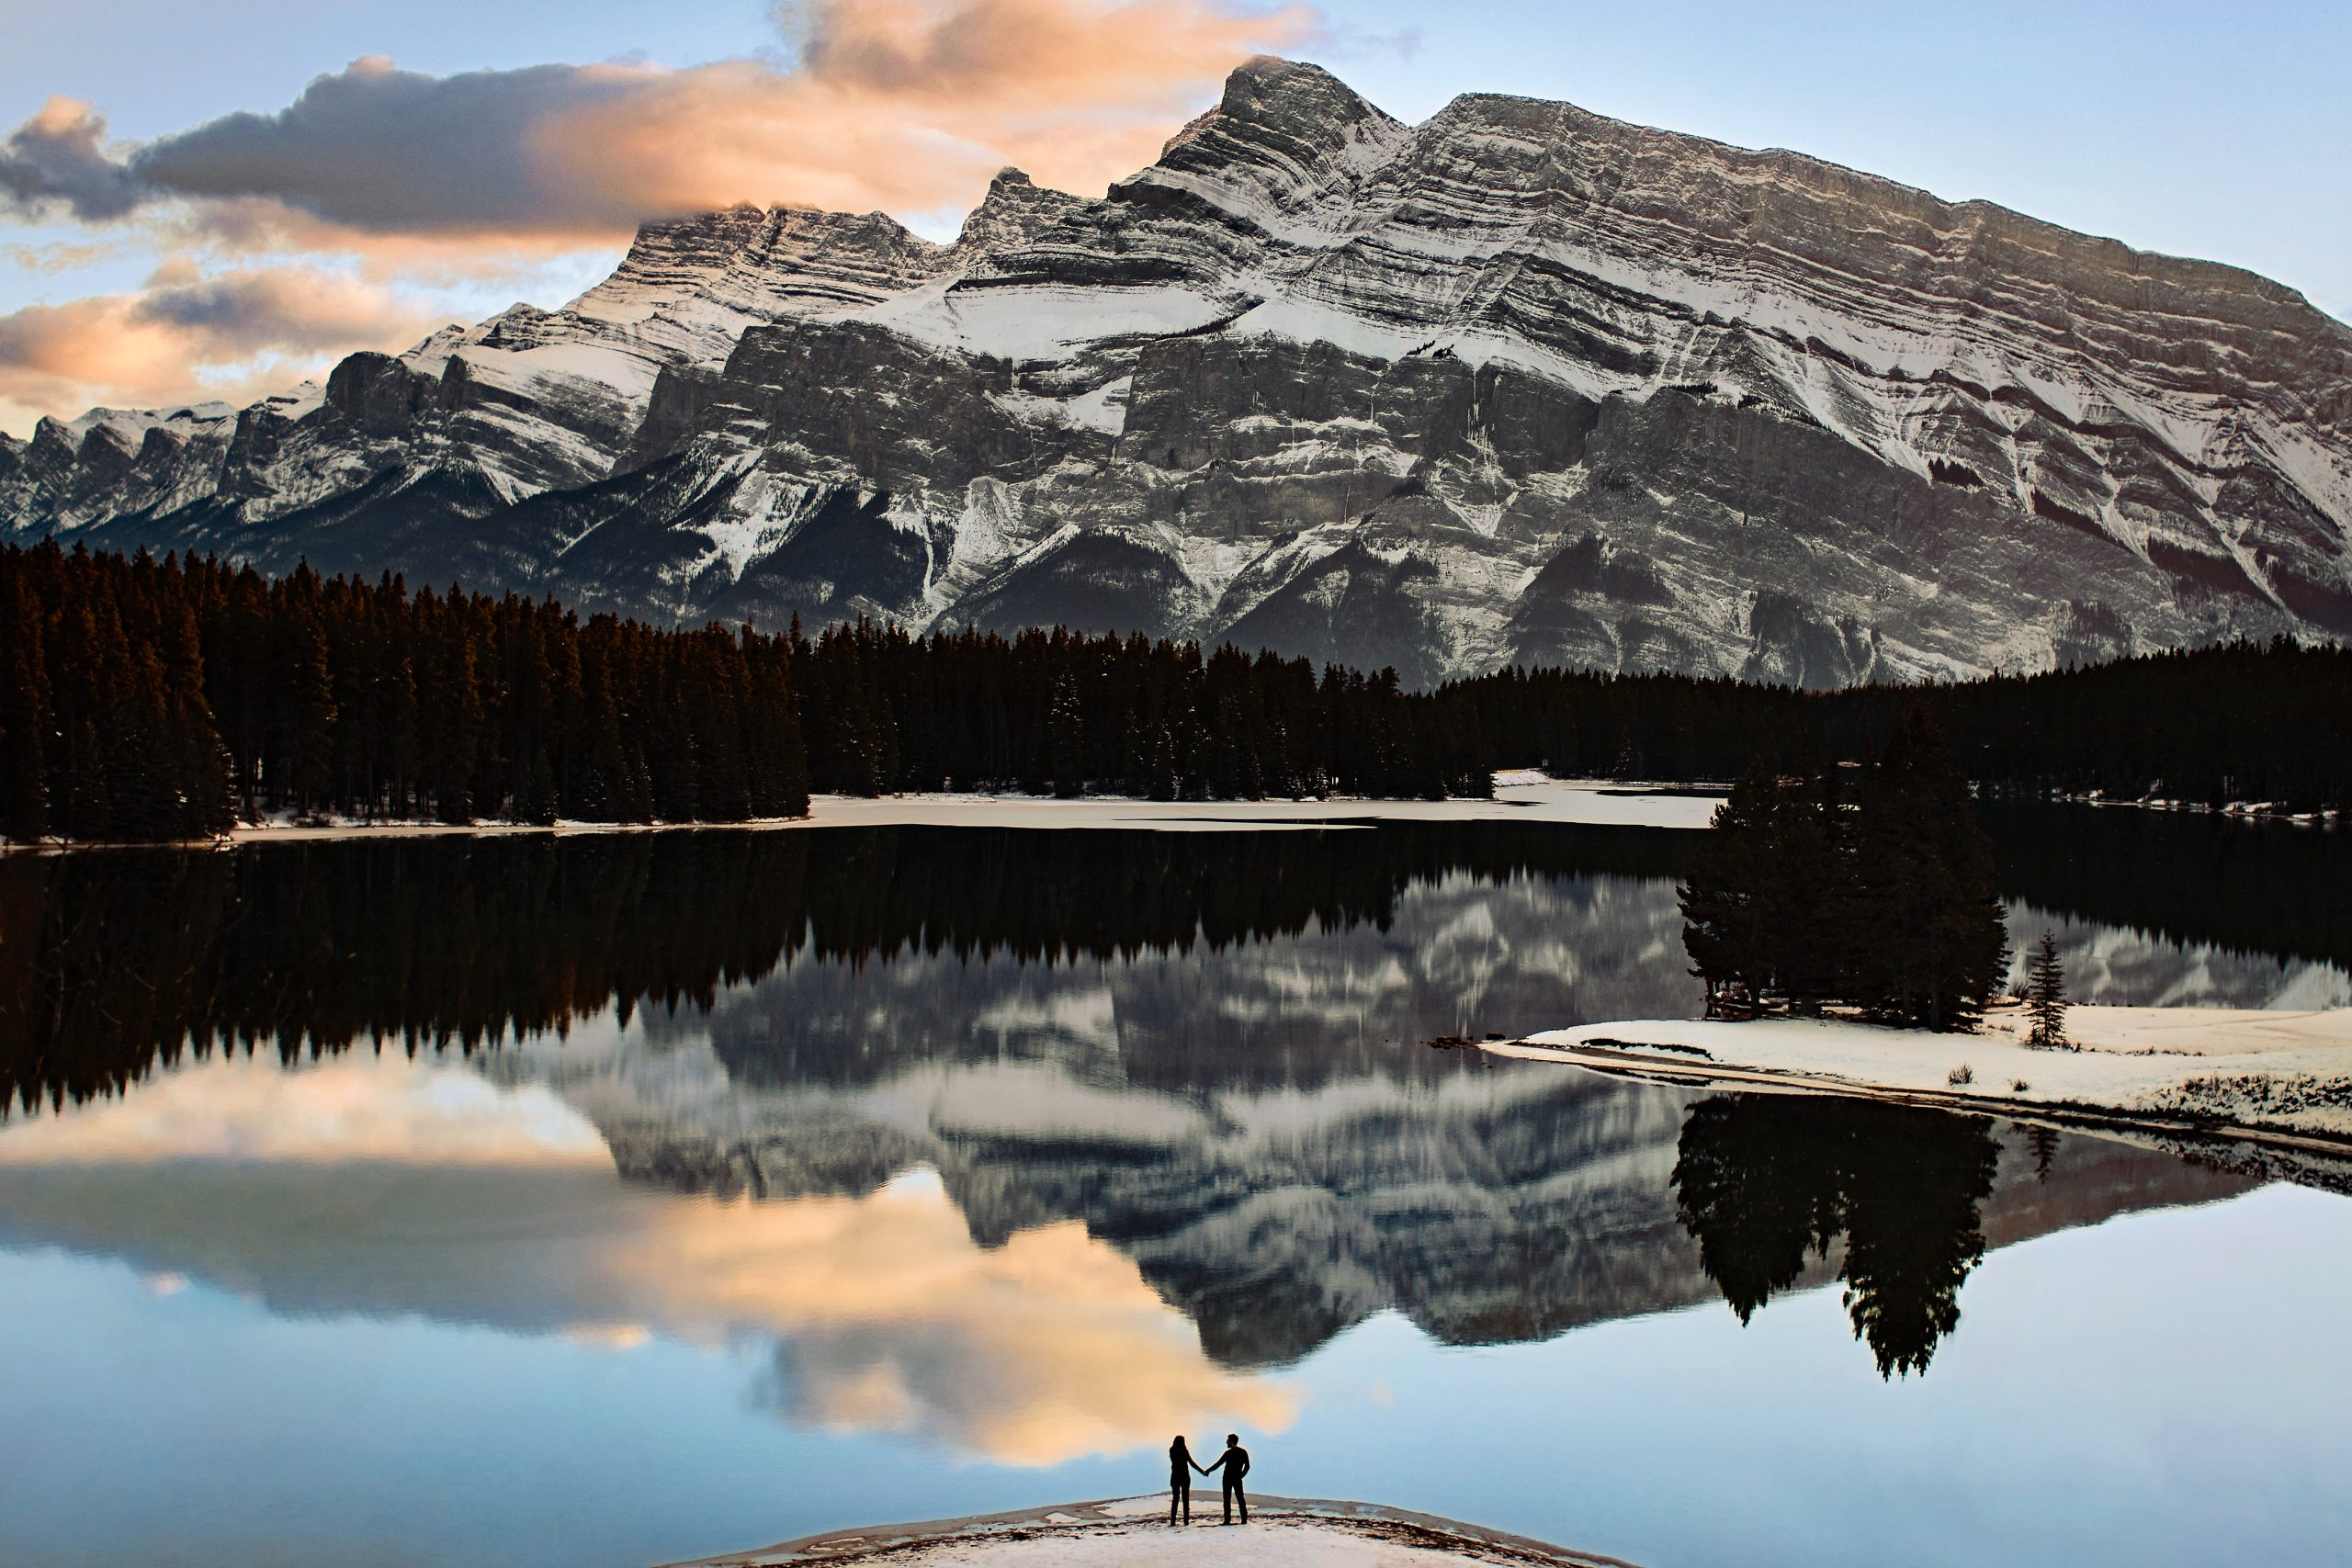 A couple hold hands and look out into a picturesque mountain landscape